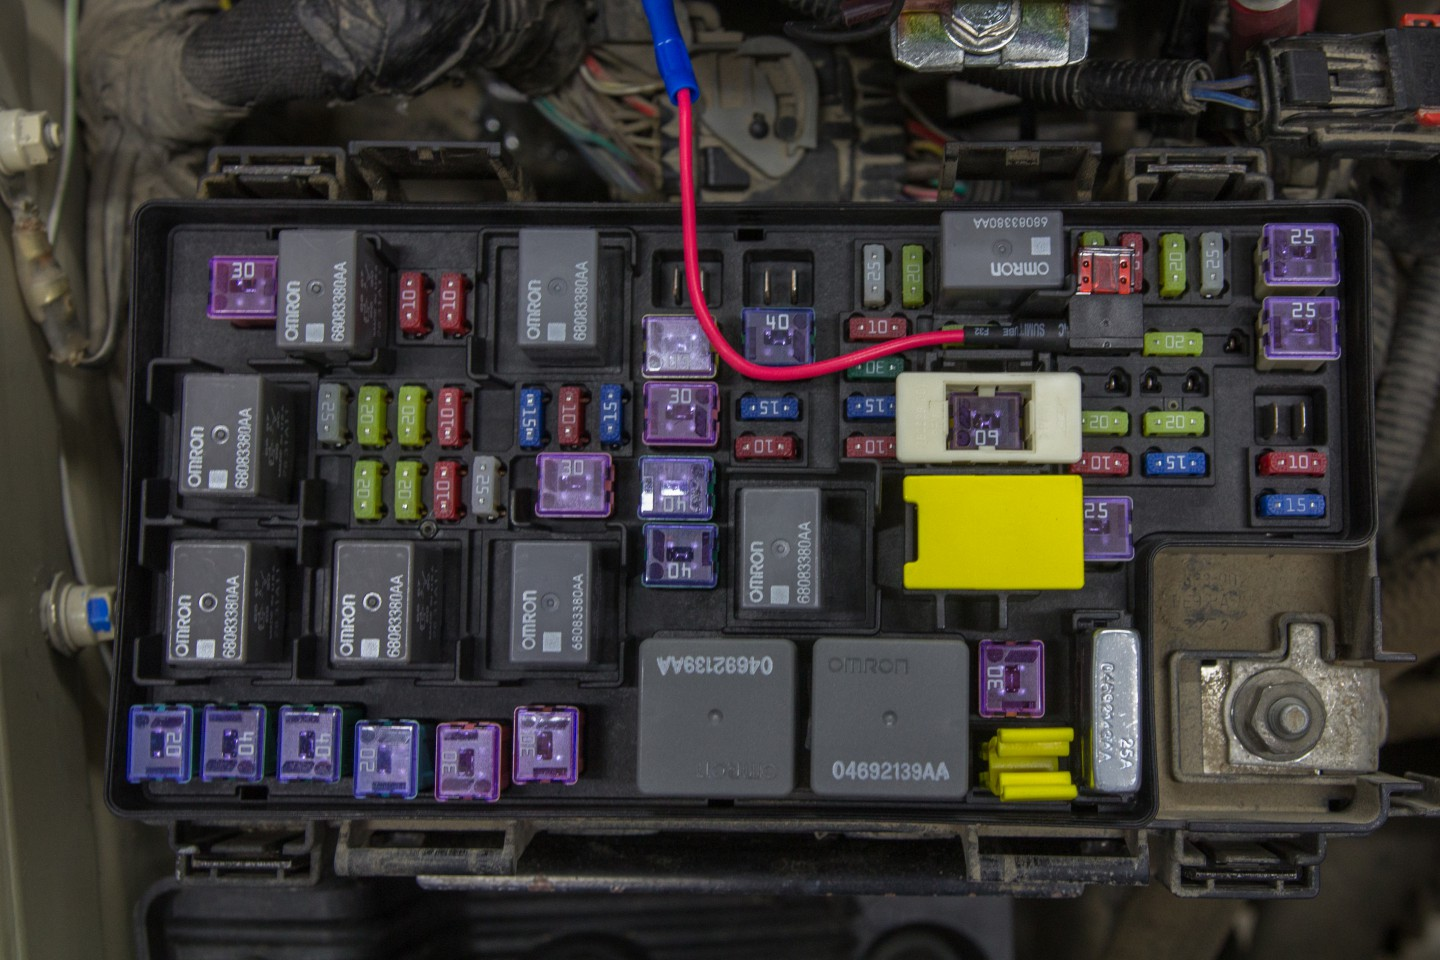 Diy Jeep Wrangler Jk Isolated Dual Batteries The Road Chose Me Battery Wiring Diagram On Truck Auxiliary Mini Add A Circuit Fuse Holder In Box